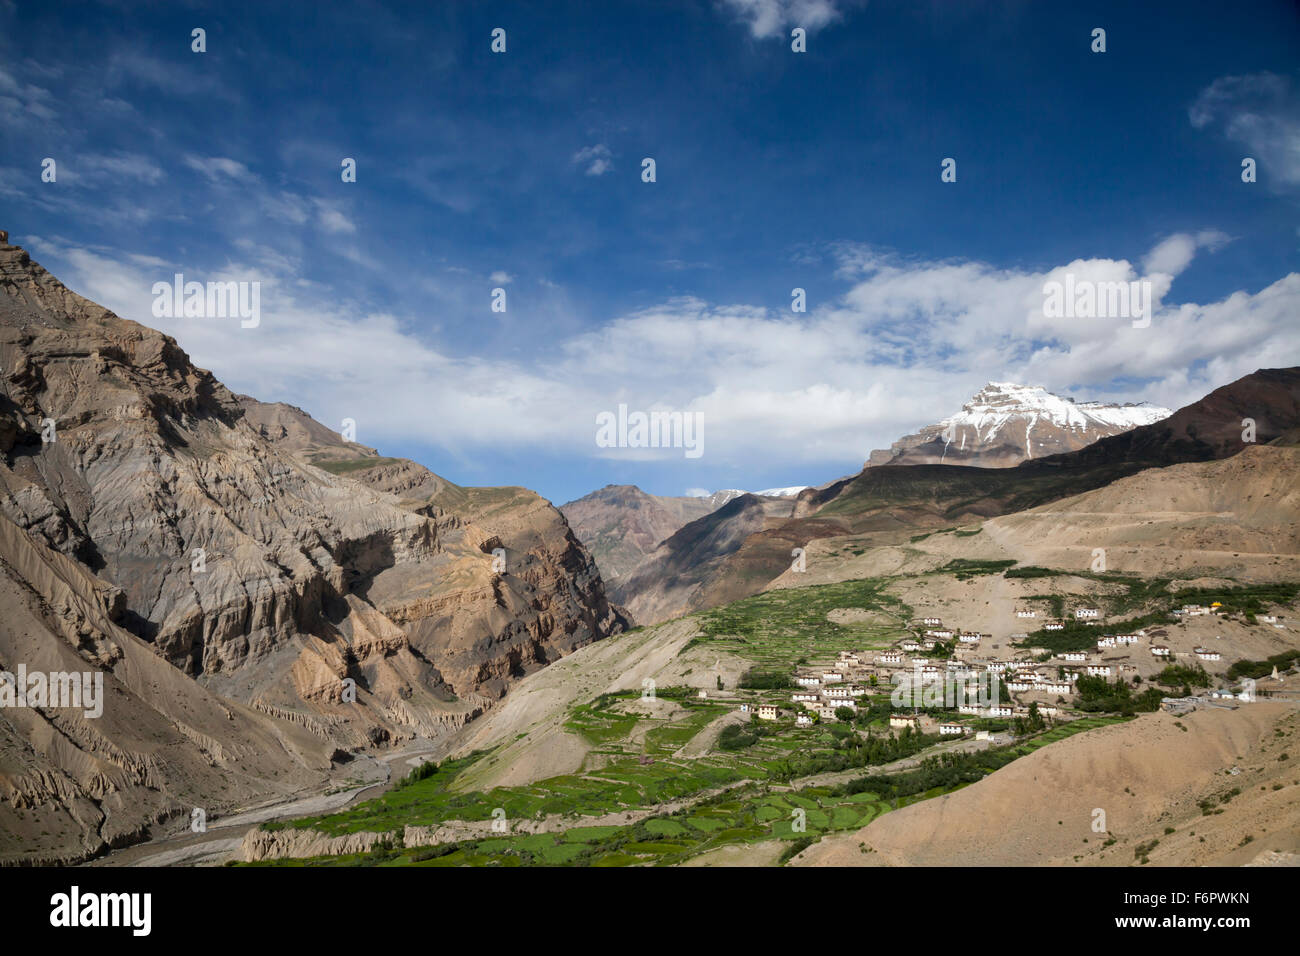 View across the Spiti Valley from Kibber in the Himalayan region of Himachal Pradesh, India - Stock Image